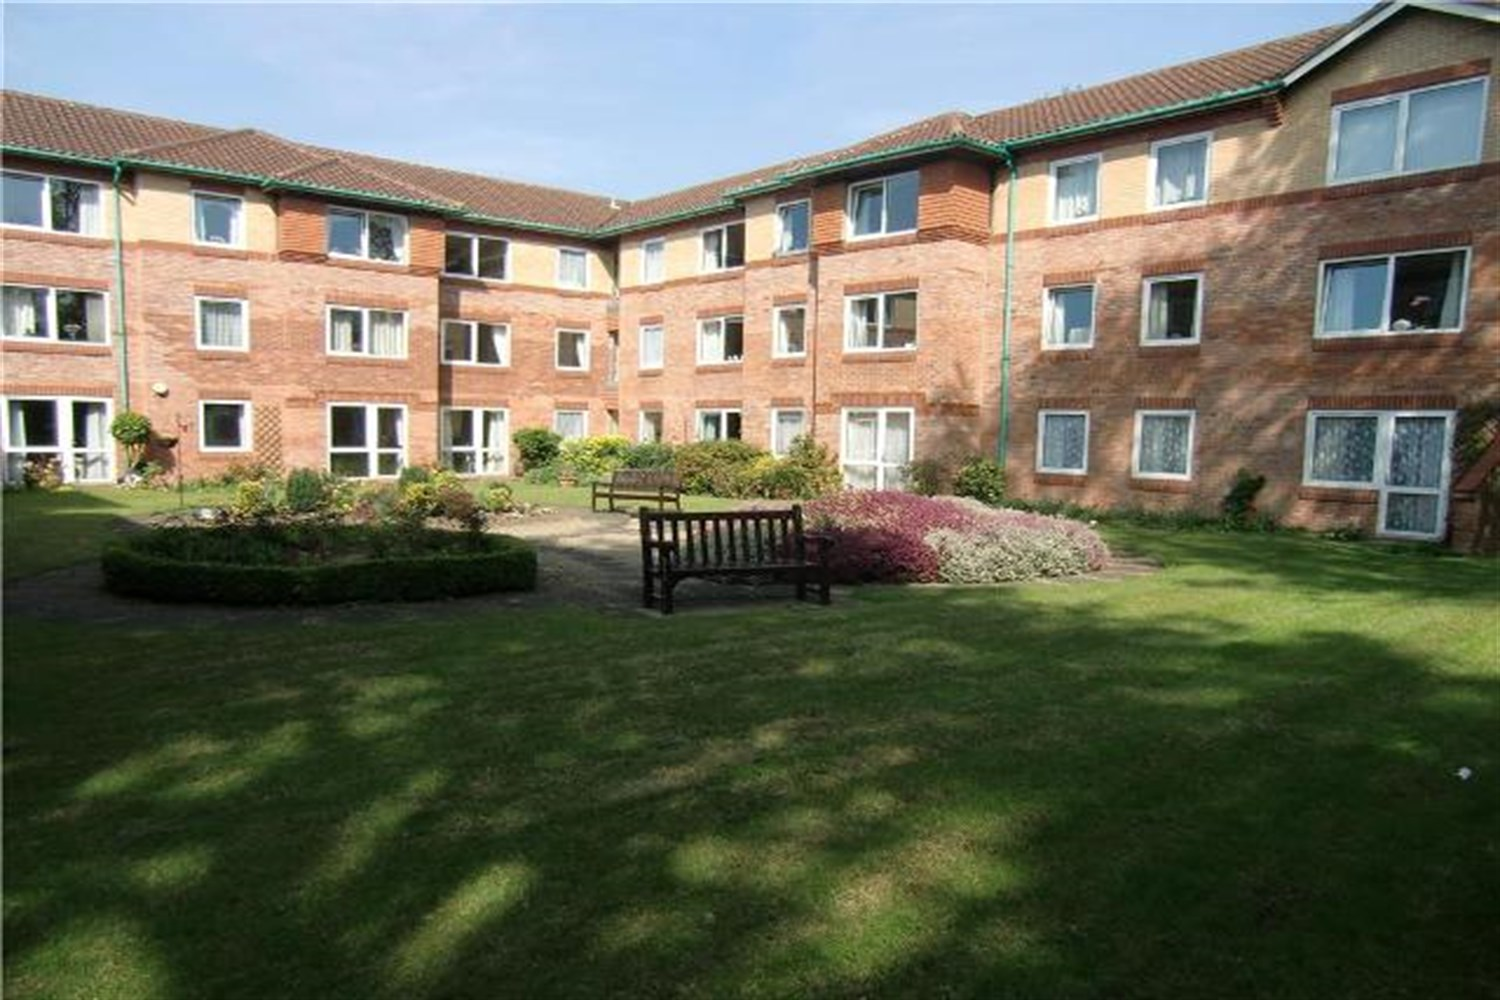 York, North Yorkshire 1 bedroom to let